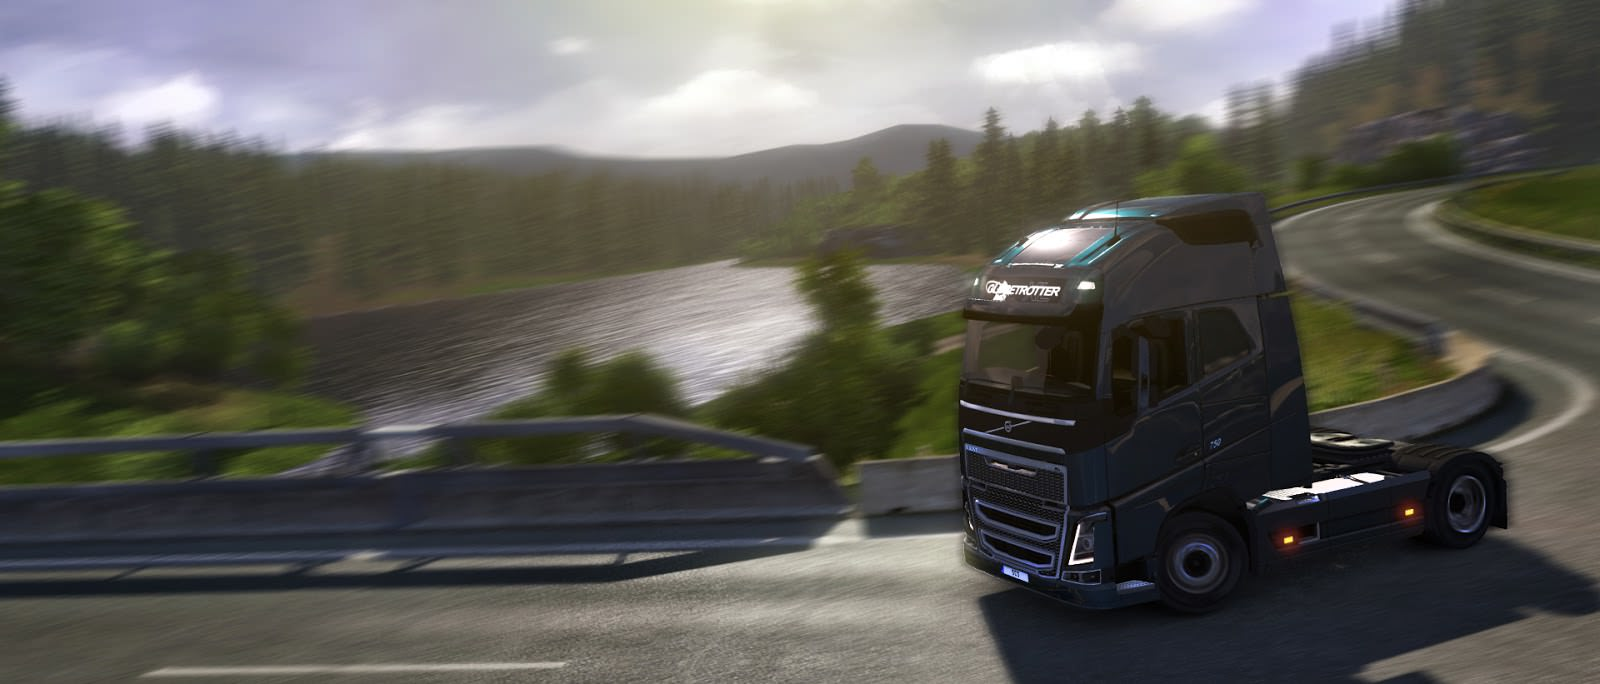 ets2-some-nordic-1